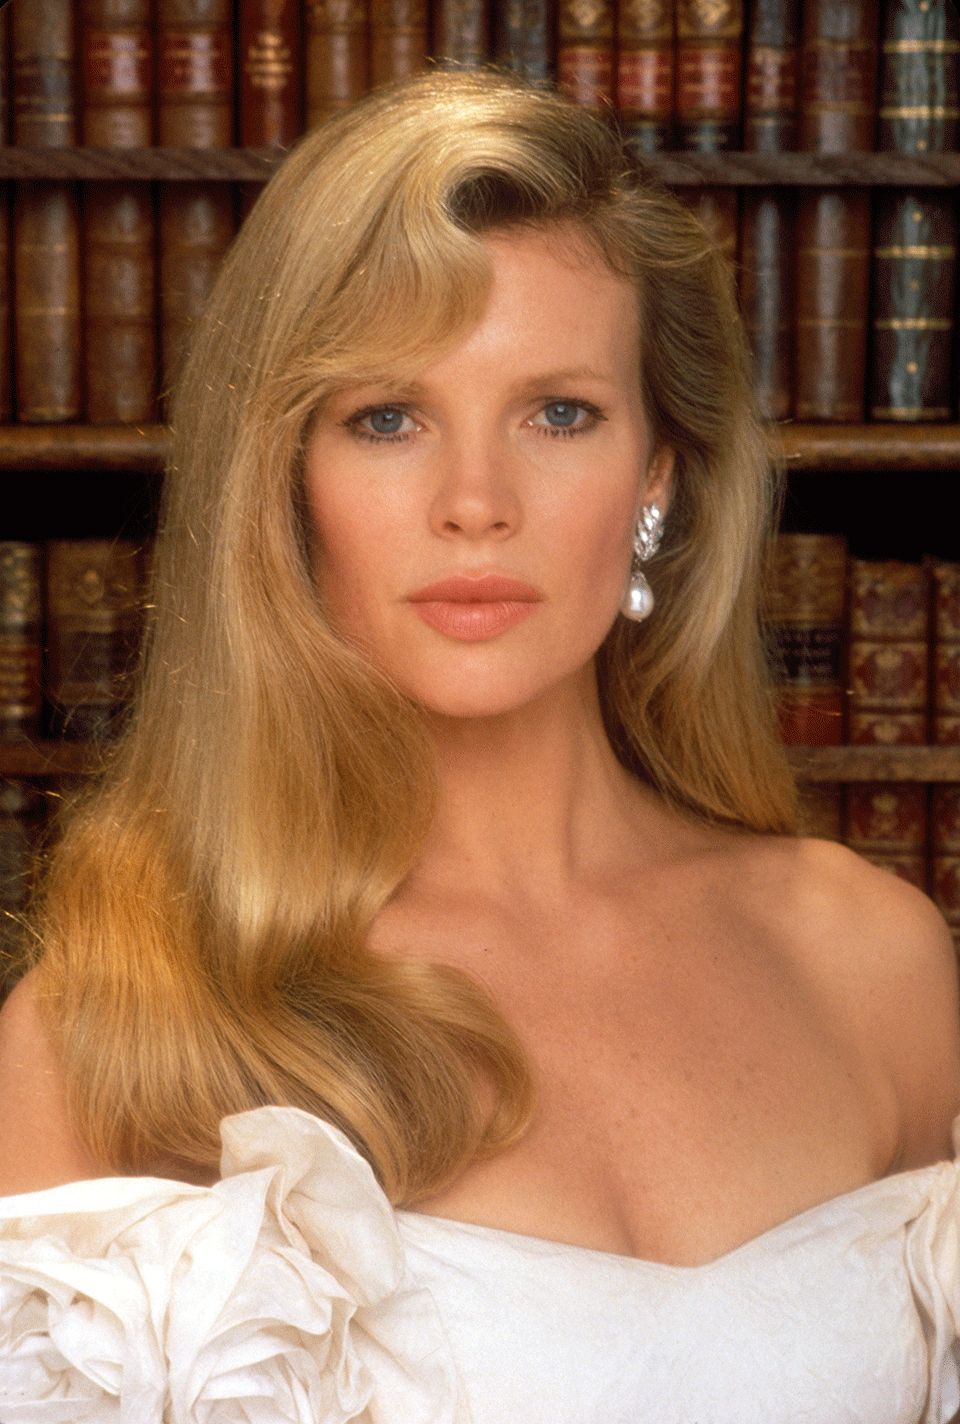 Vicki Vale (Kim Basinger) | Batman Wiki | FANDOM powered ...